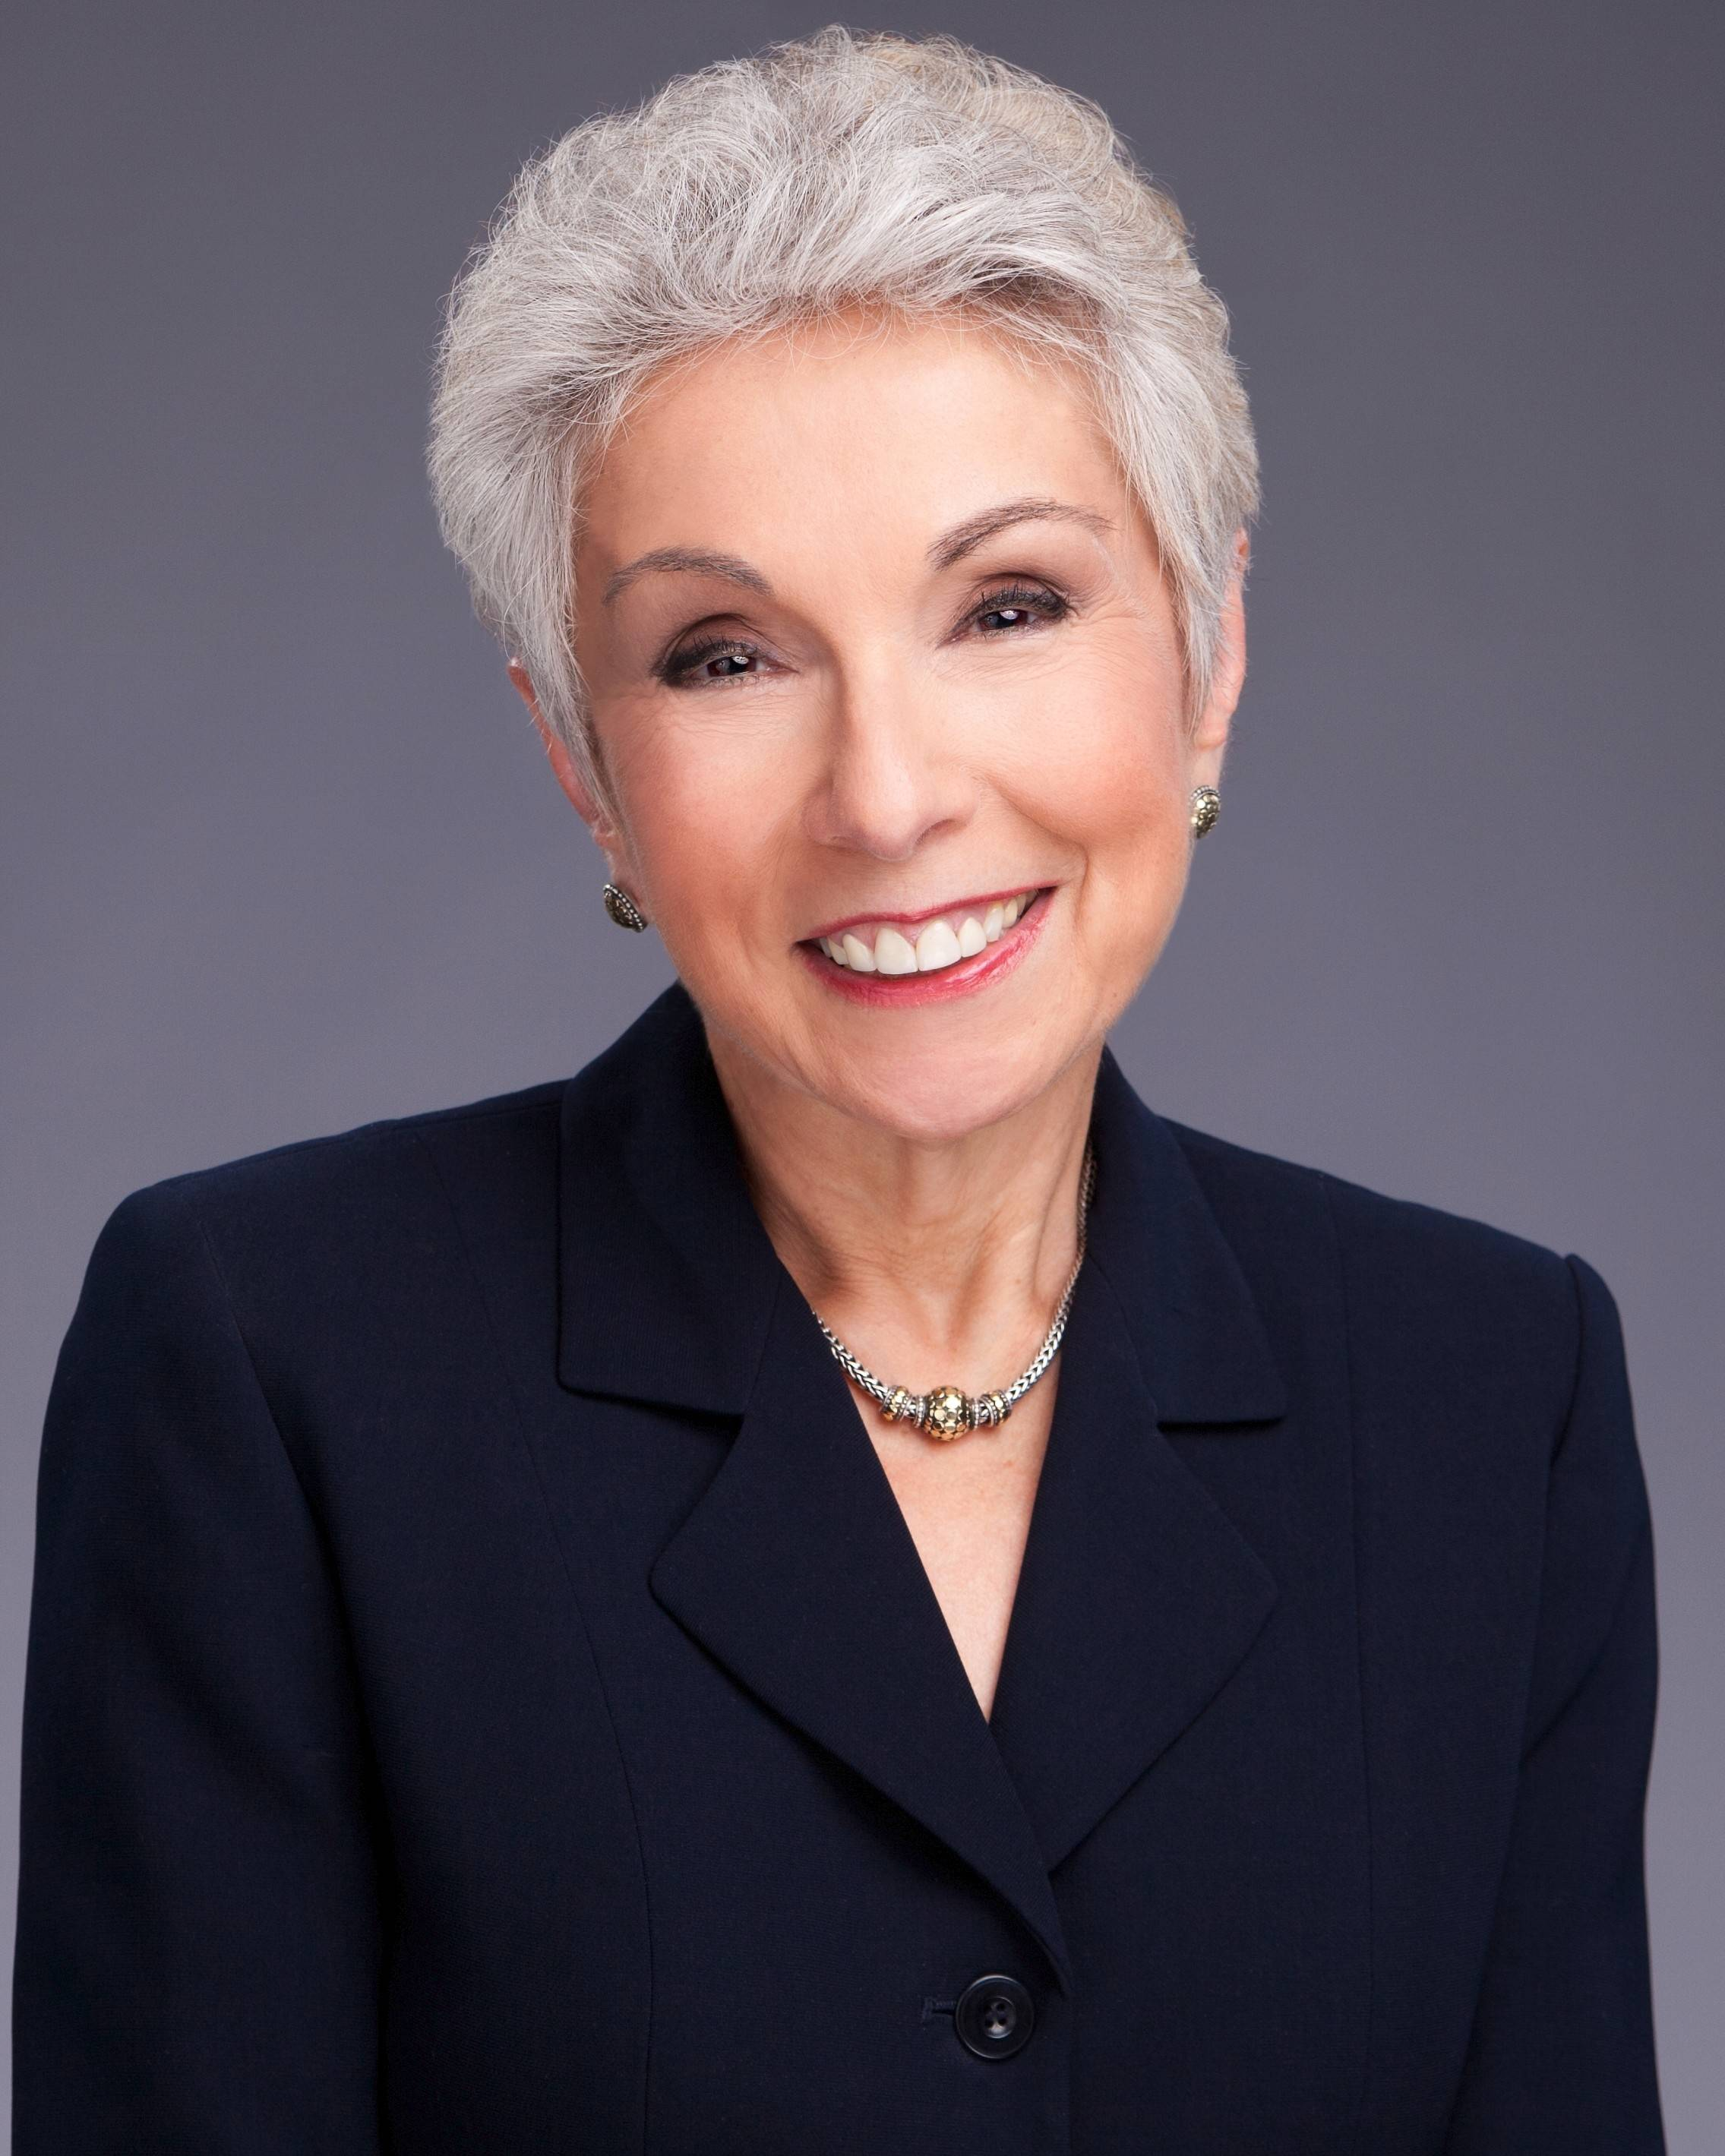 Dr. Sandy Goldberg will emcee the Presence St. Joseph Hospital Auxiliary Fashion Show on April 5.